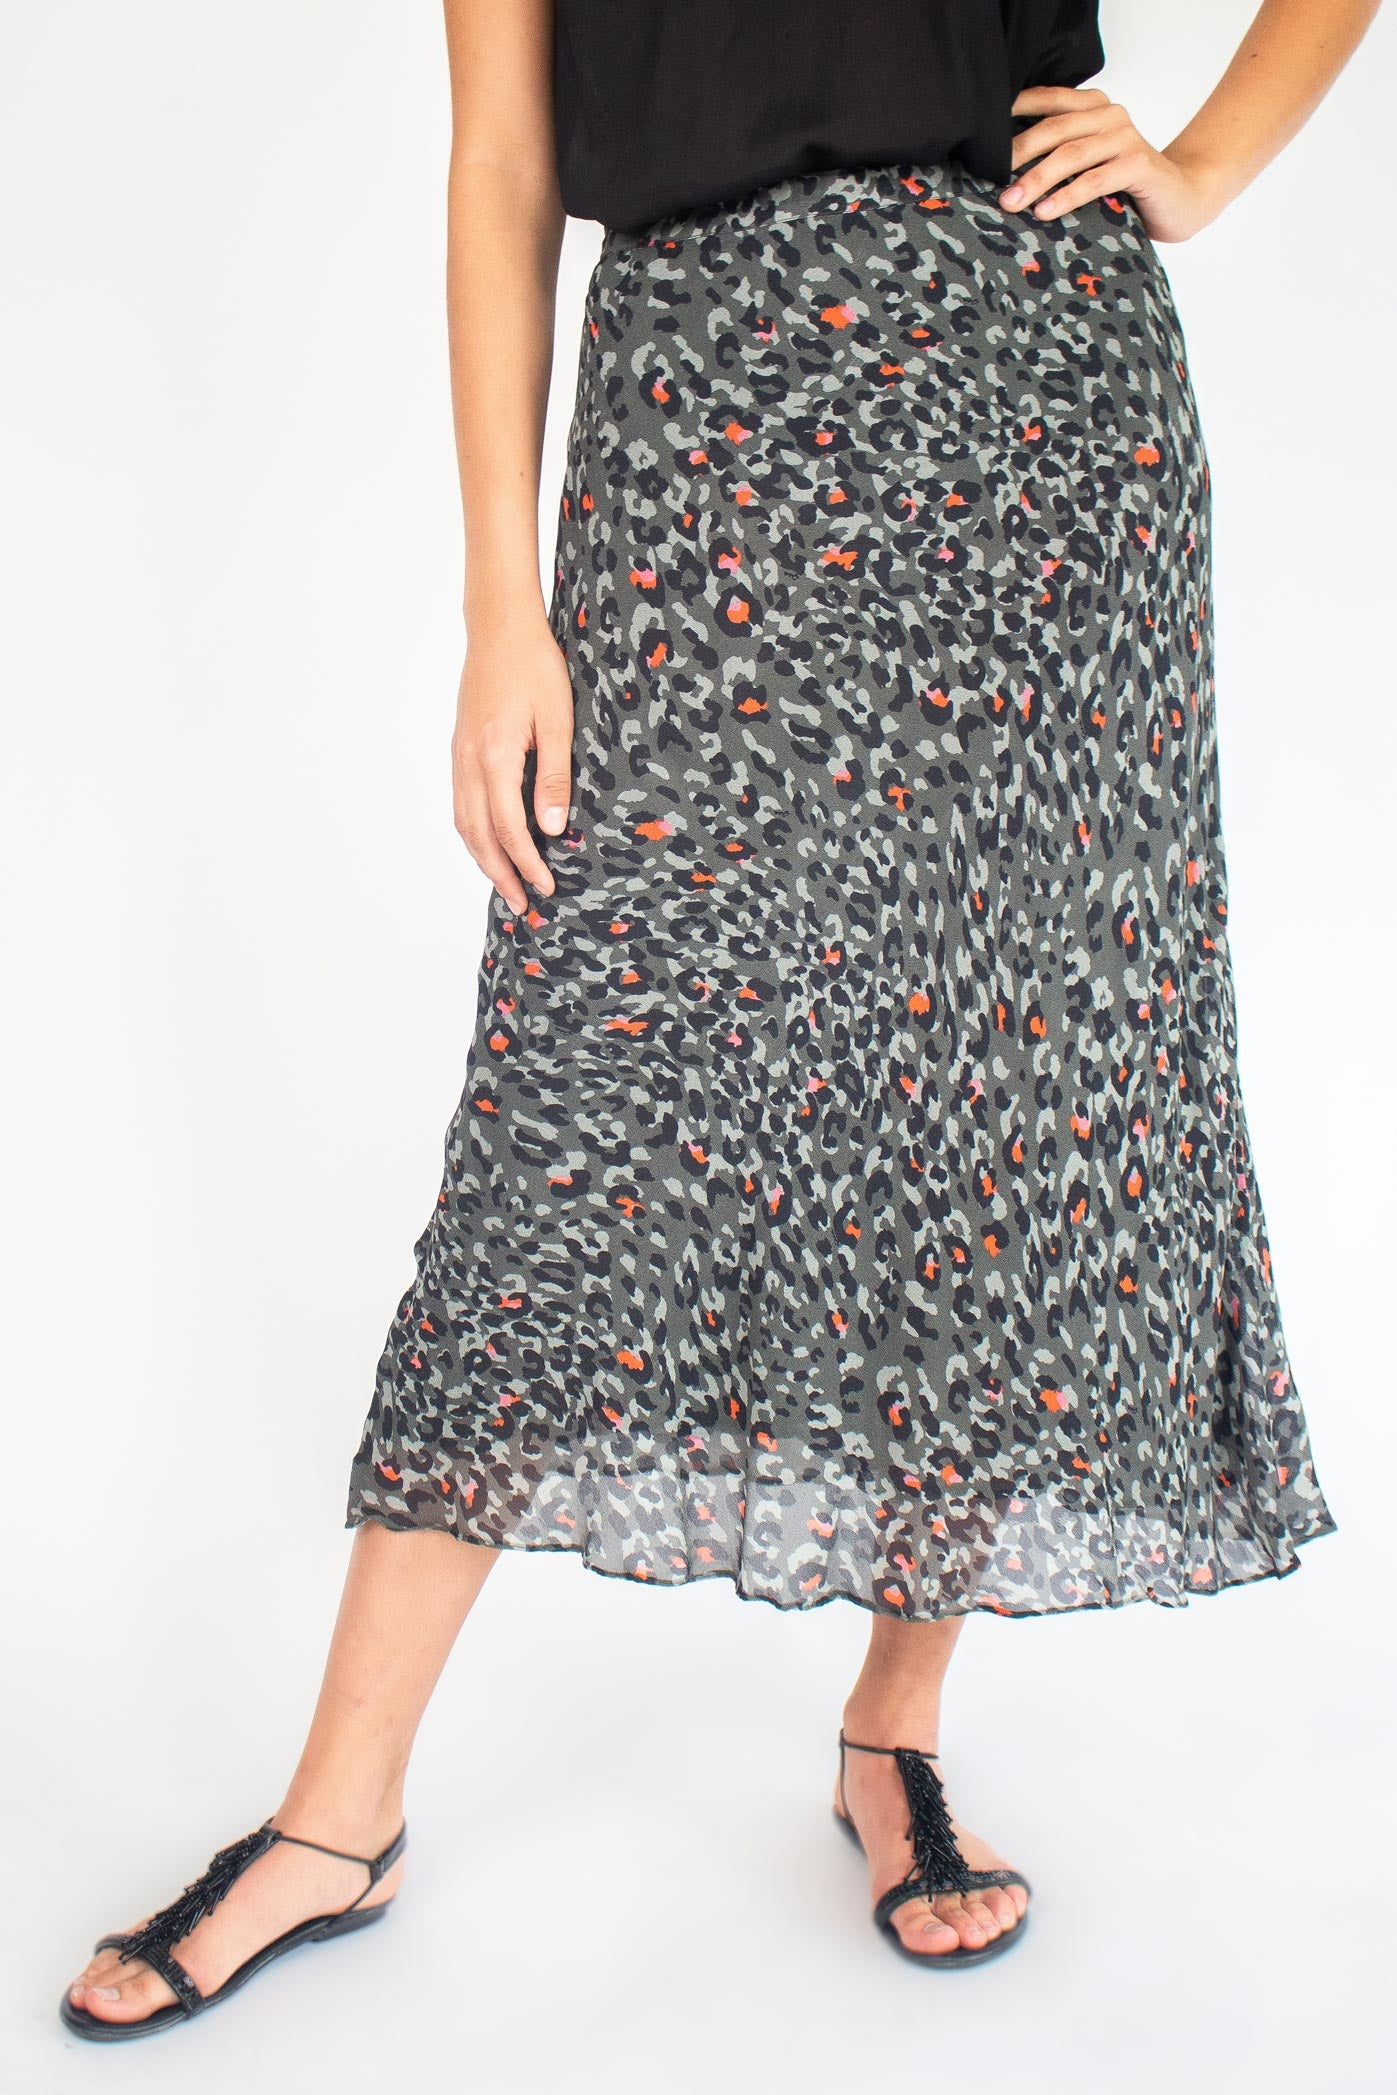 VICTOIRE Skirt with Leo Print